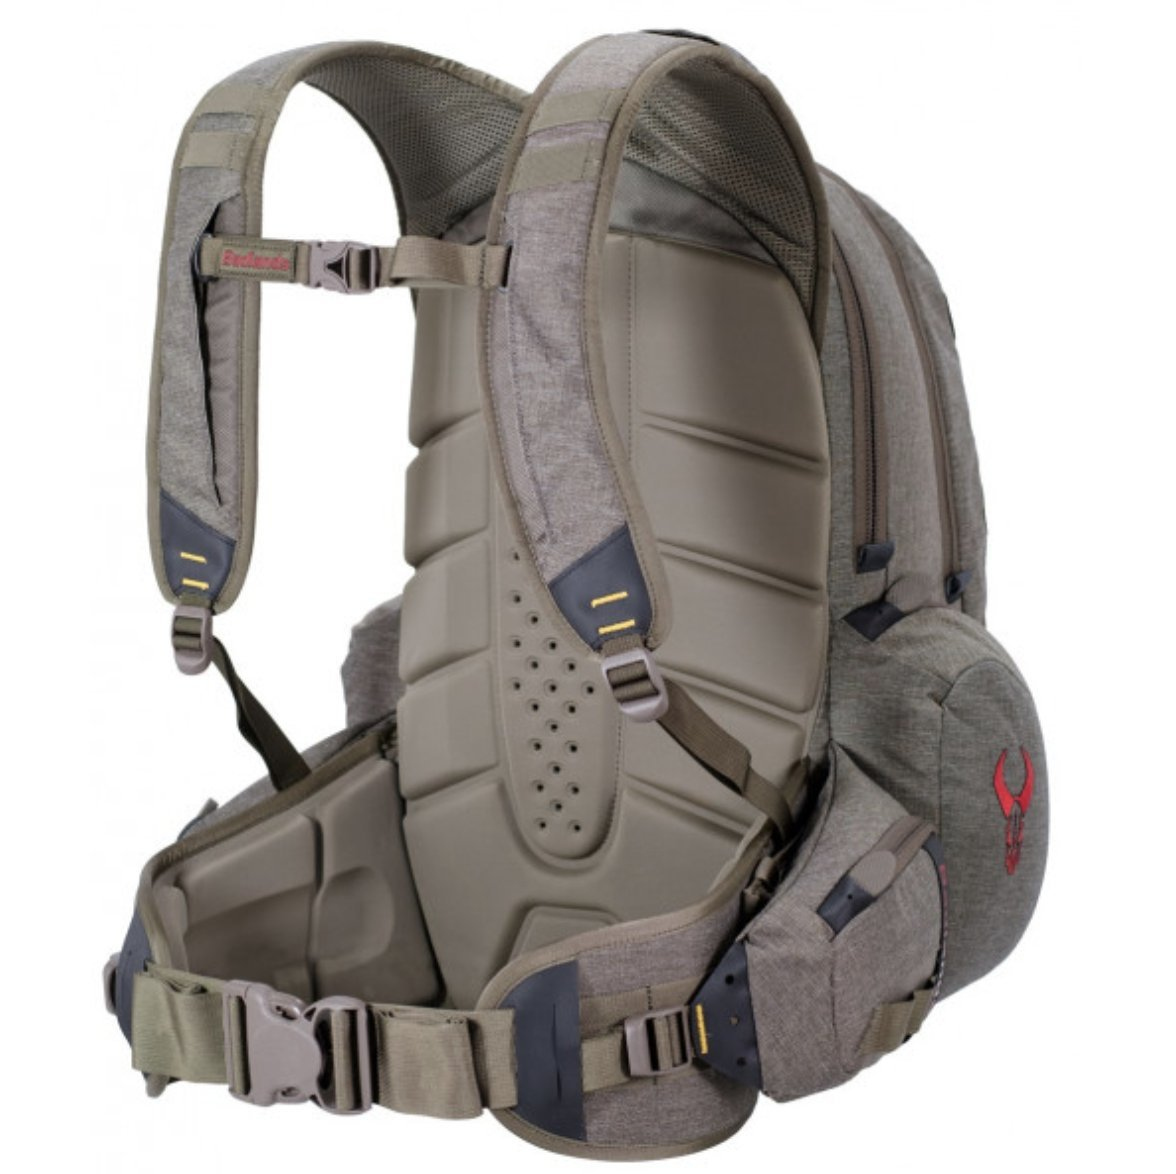 Badlands Superday Hunting Backpack - Bow, Rifle, and Pistol Compatible, Solid by Badlands (Image #2)